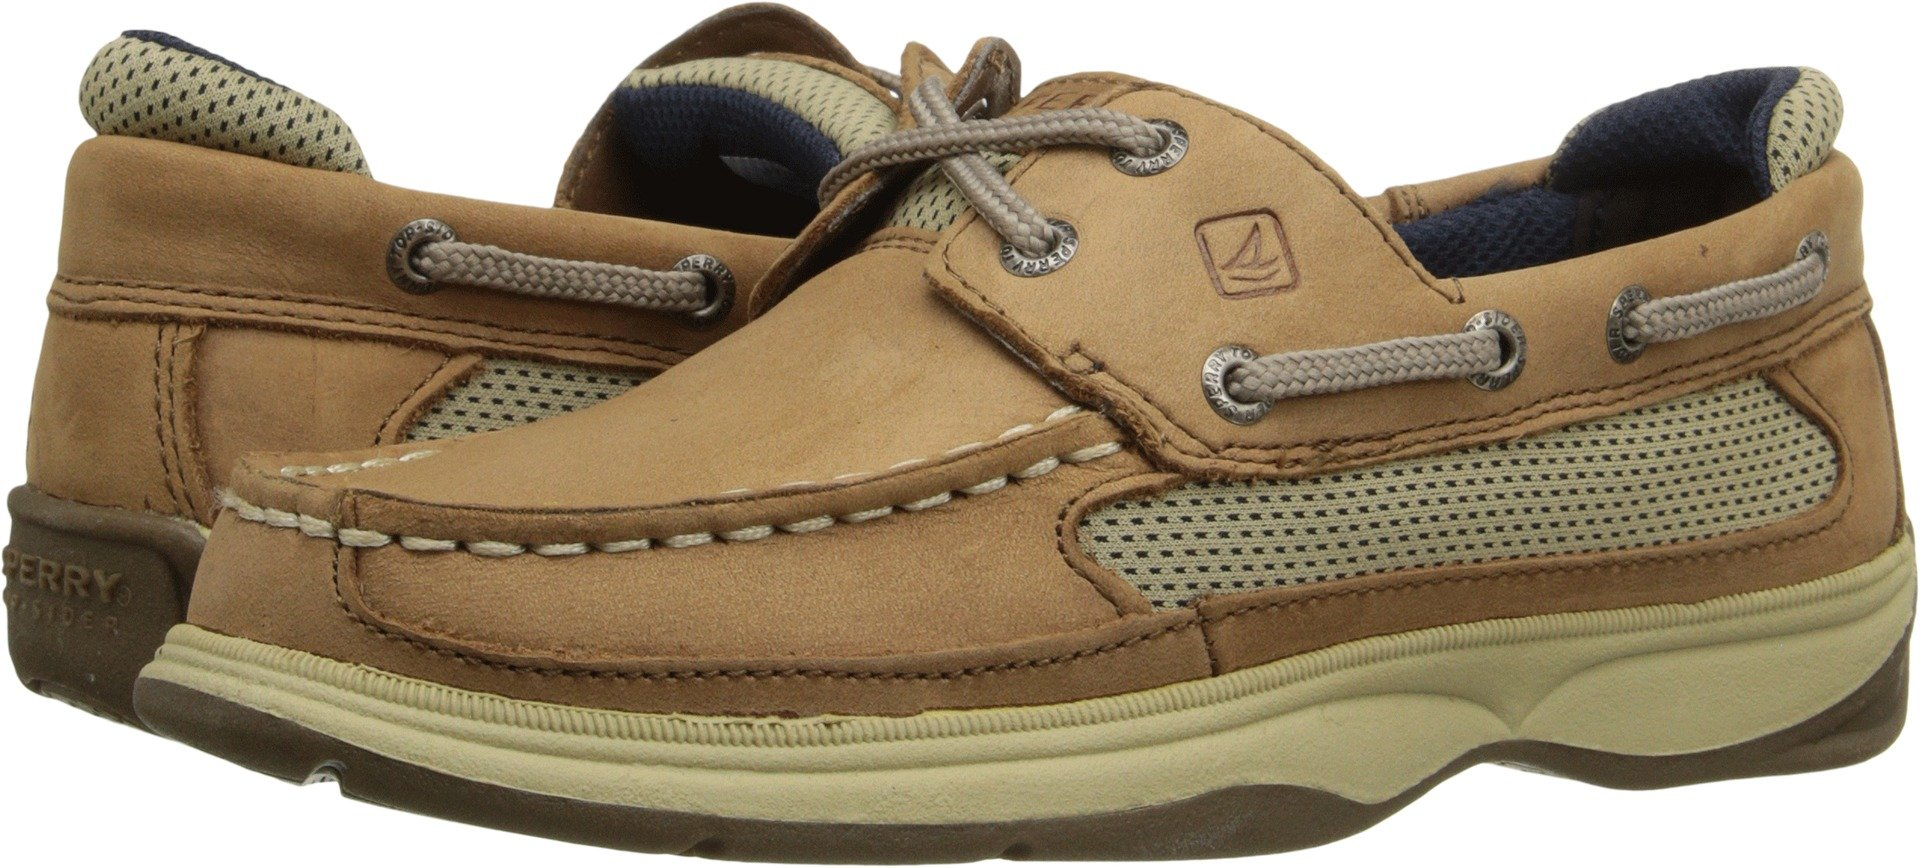 Sperry Top-Sider Kids Boy's Lanyard (Little Kid/Big Kid) Dark Tan/Navy Boat Shoe 7 Big Kid M by Sperry